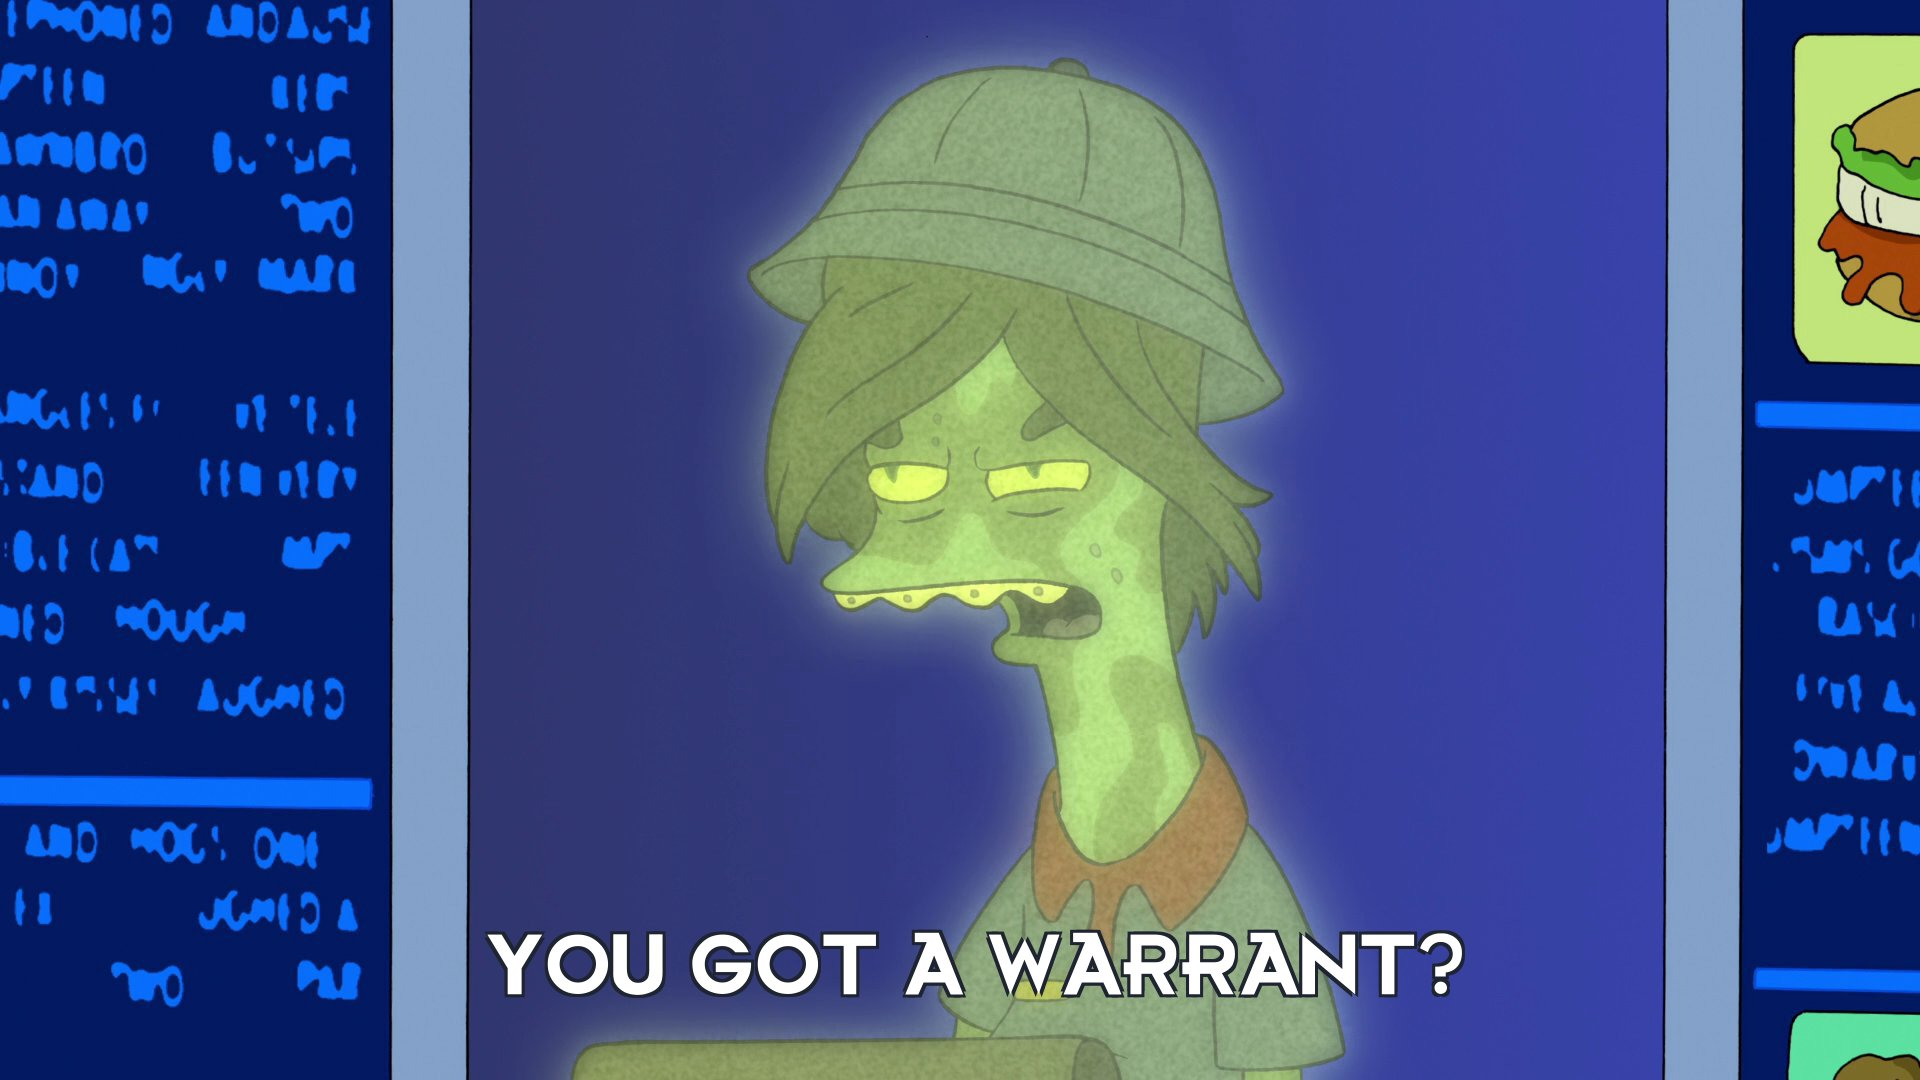 Teenager: You got a warrant?